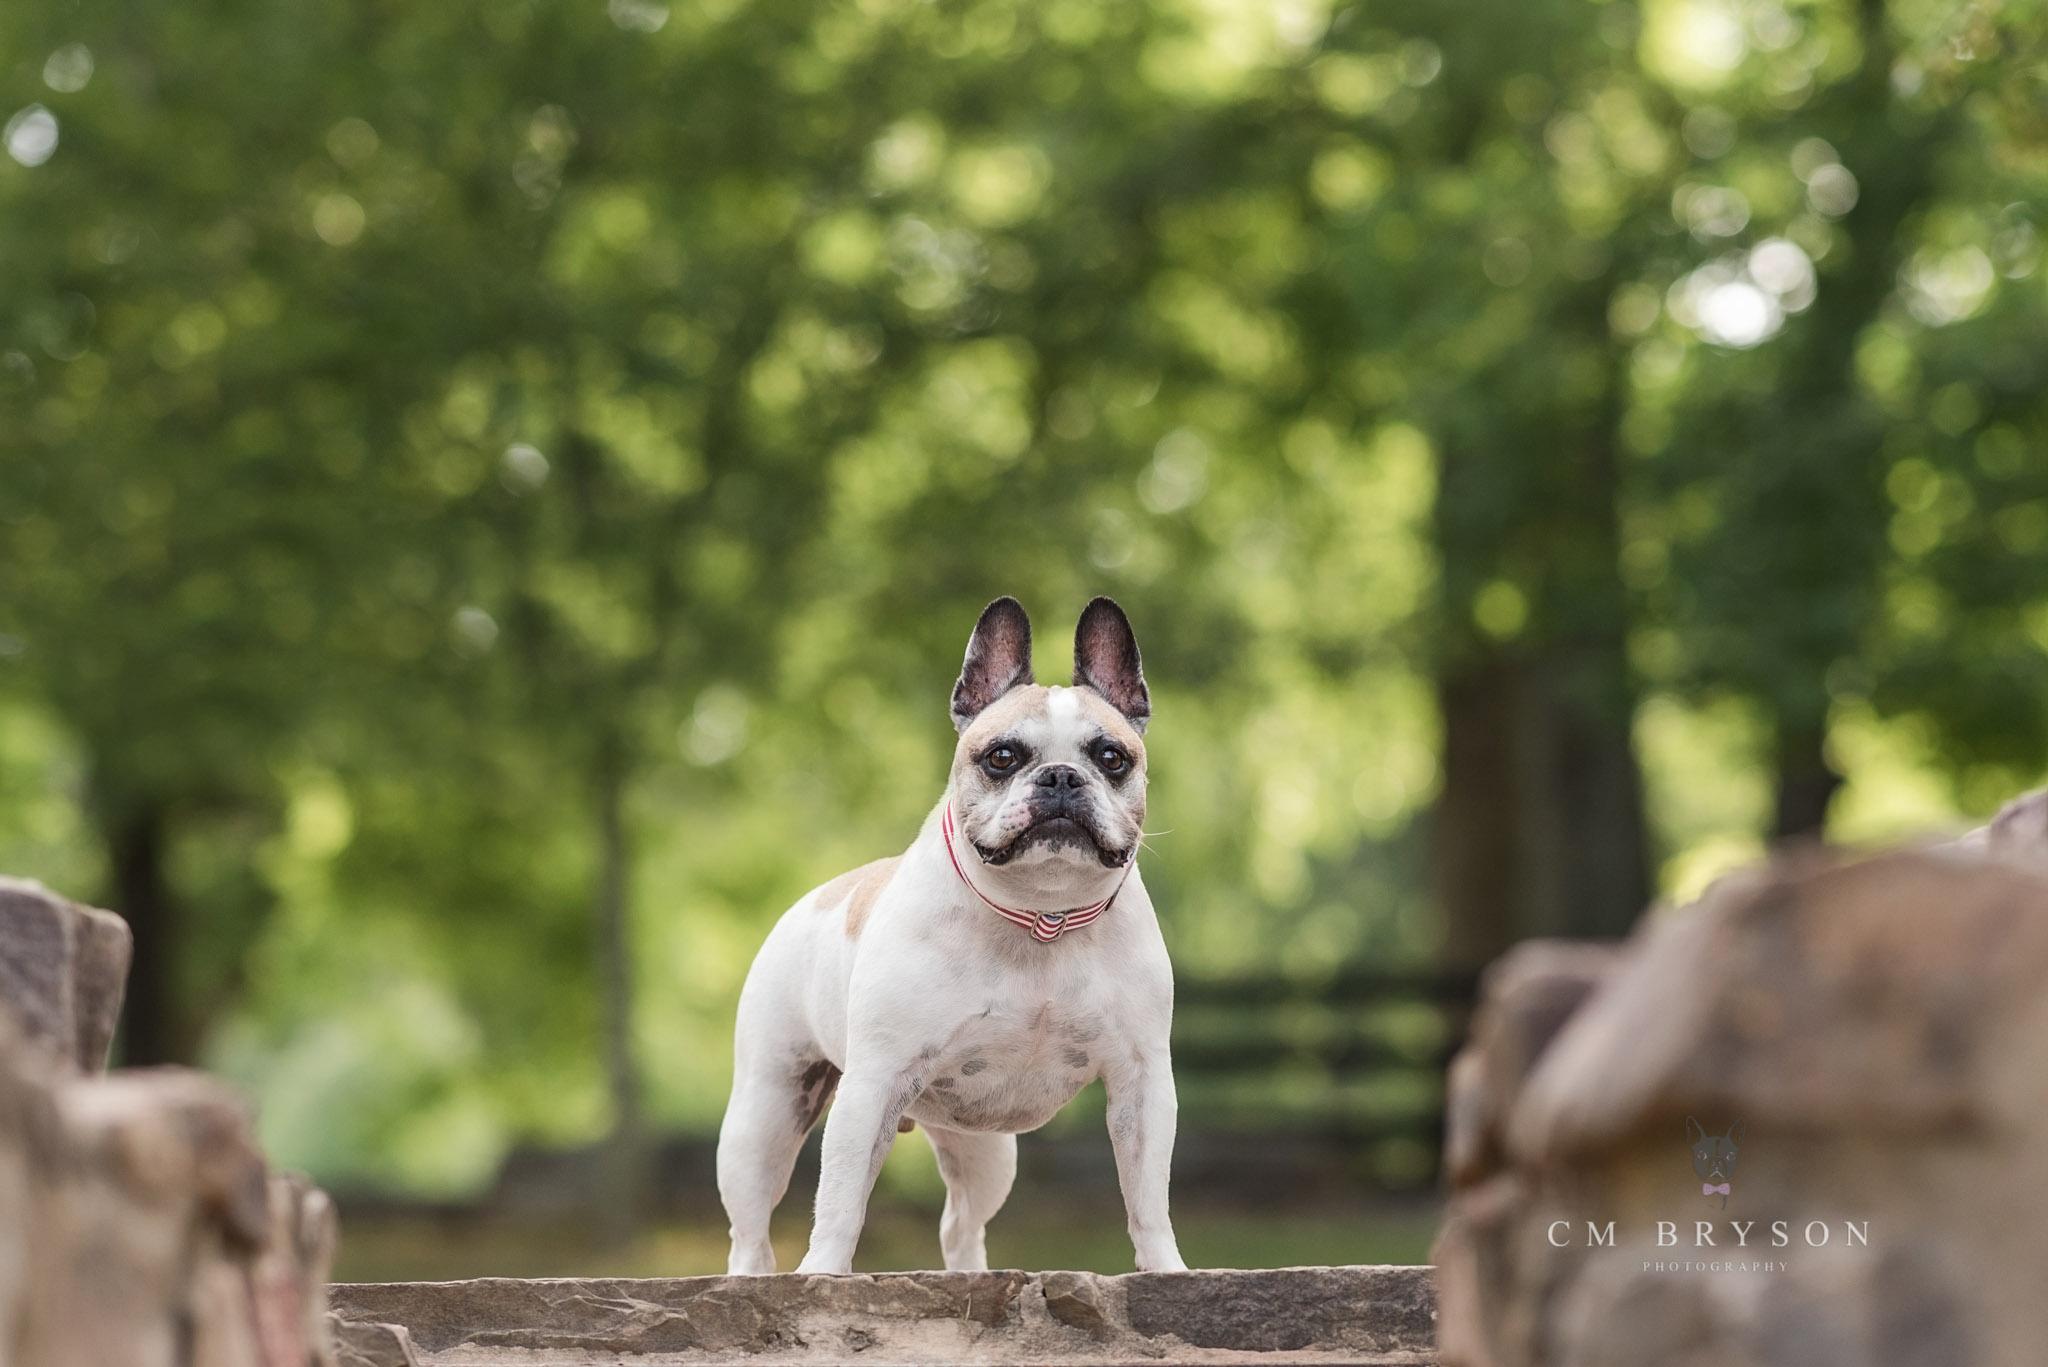 Choosing the best location for pet photography can be tough. Here Atlanta pet photographer Courtney shares her 3 step process.